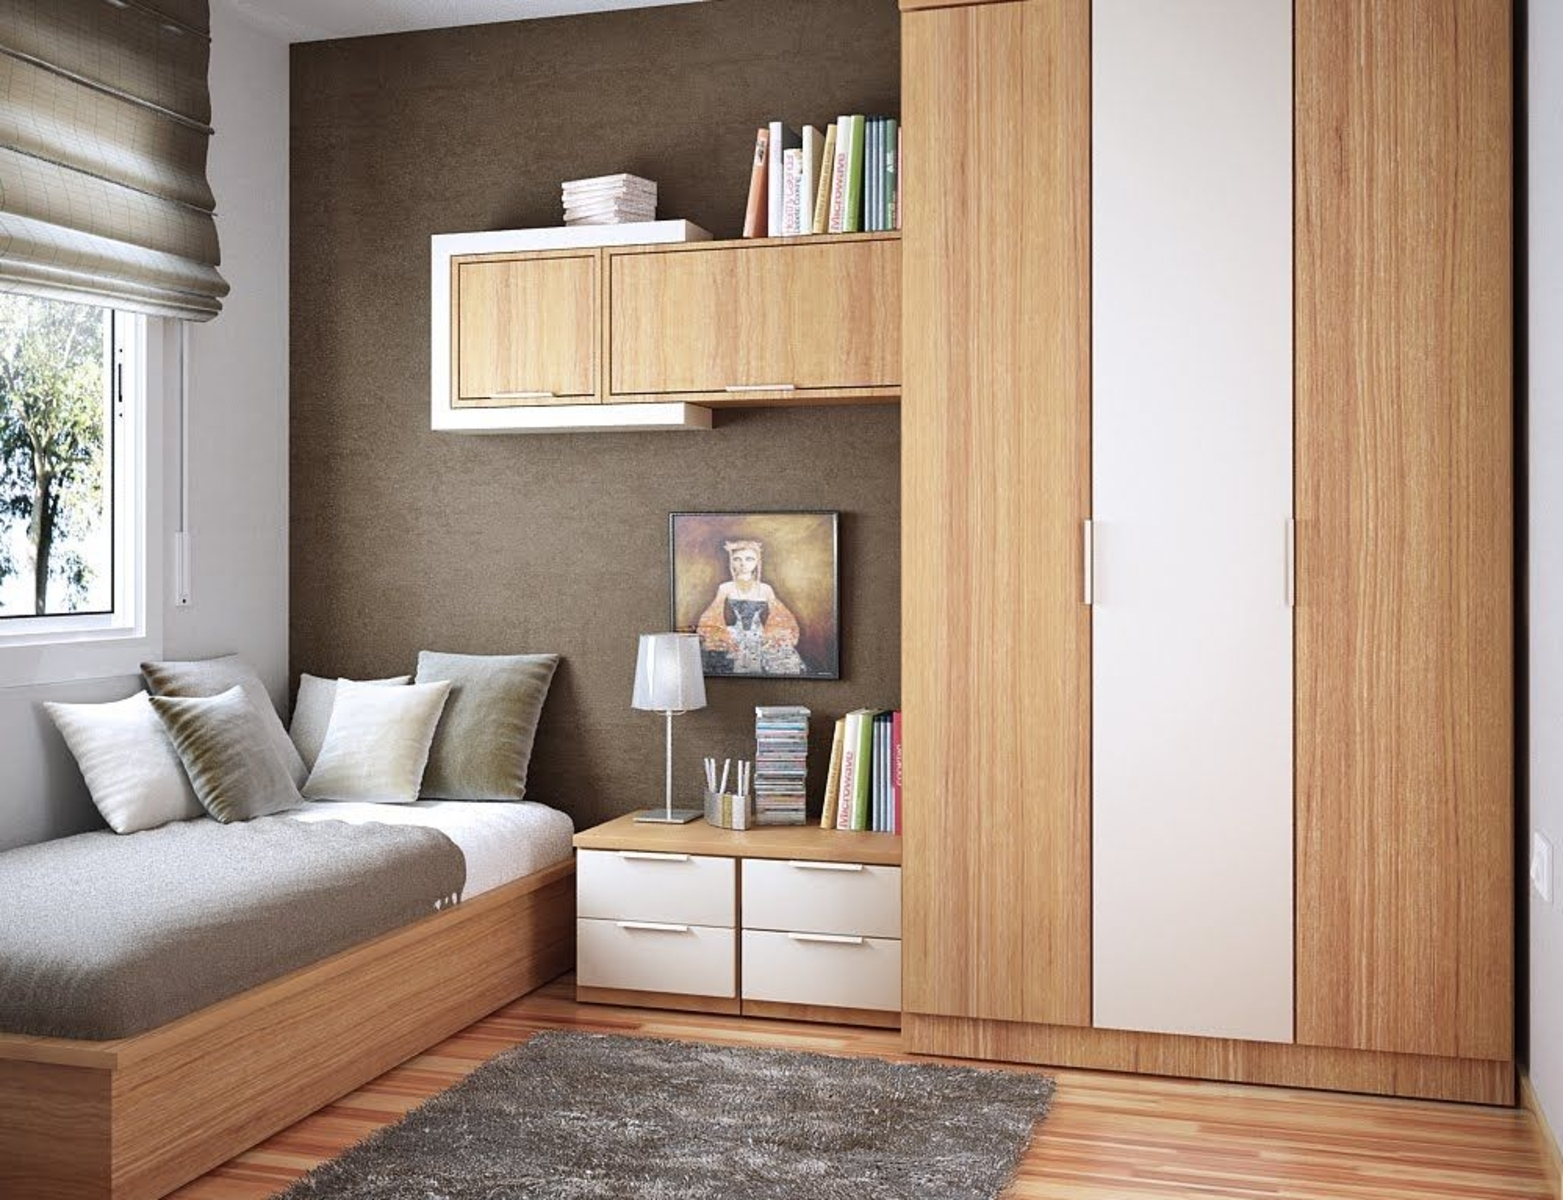 Furniture Space Saving House In Bedroom Feature Wooden Book Intended For Space Saving Wardrobes (View 7 of 25)